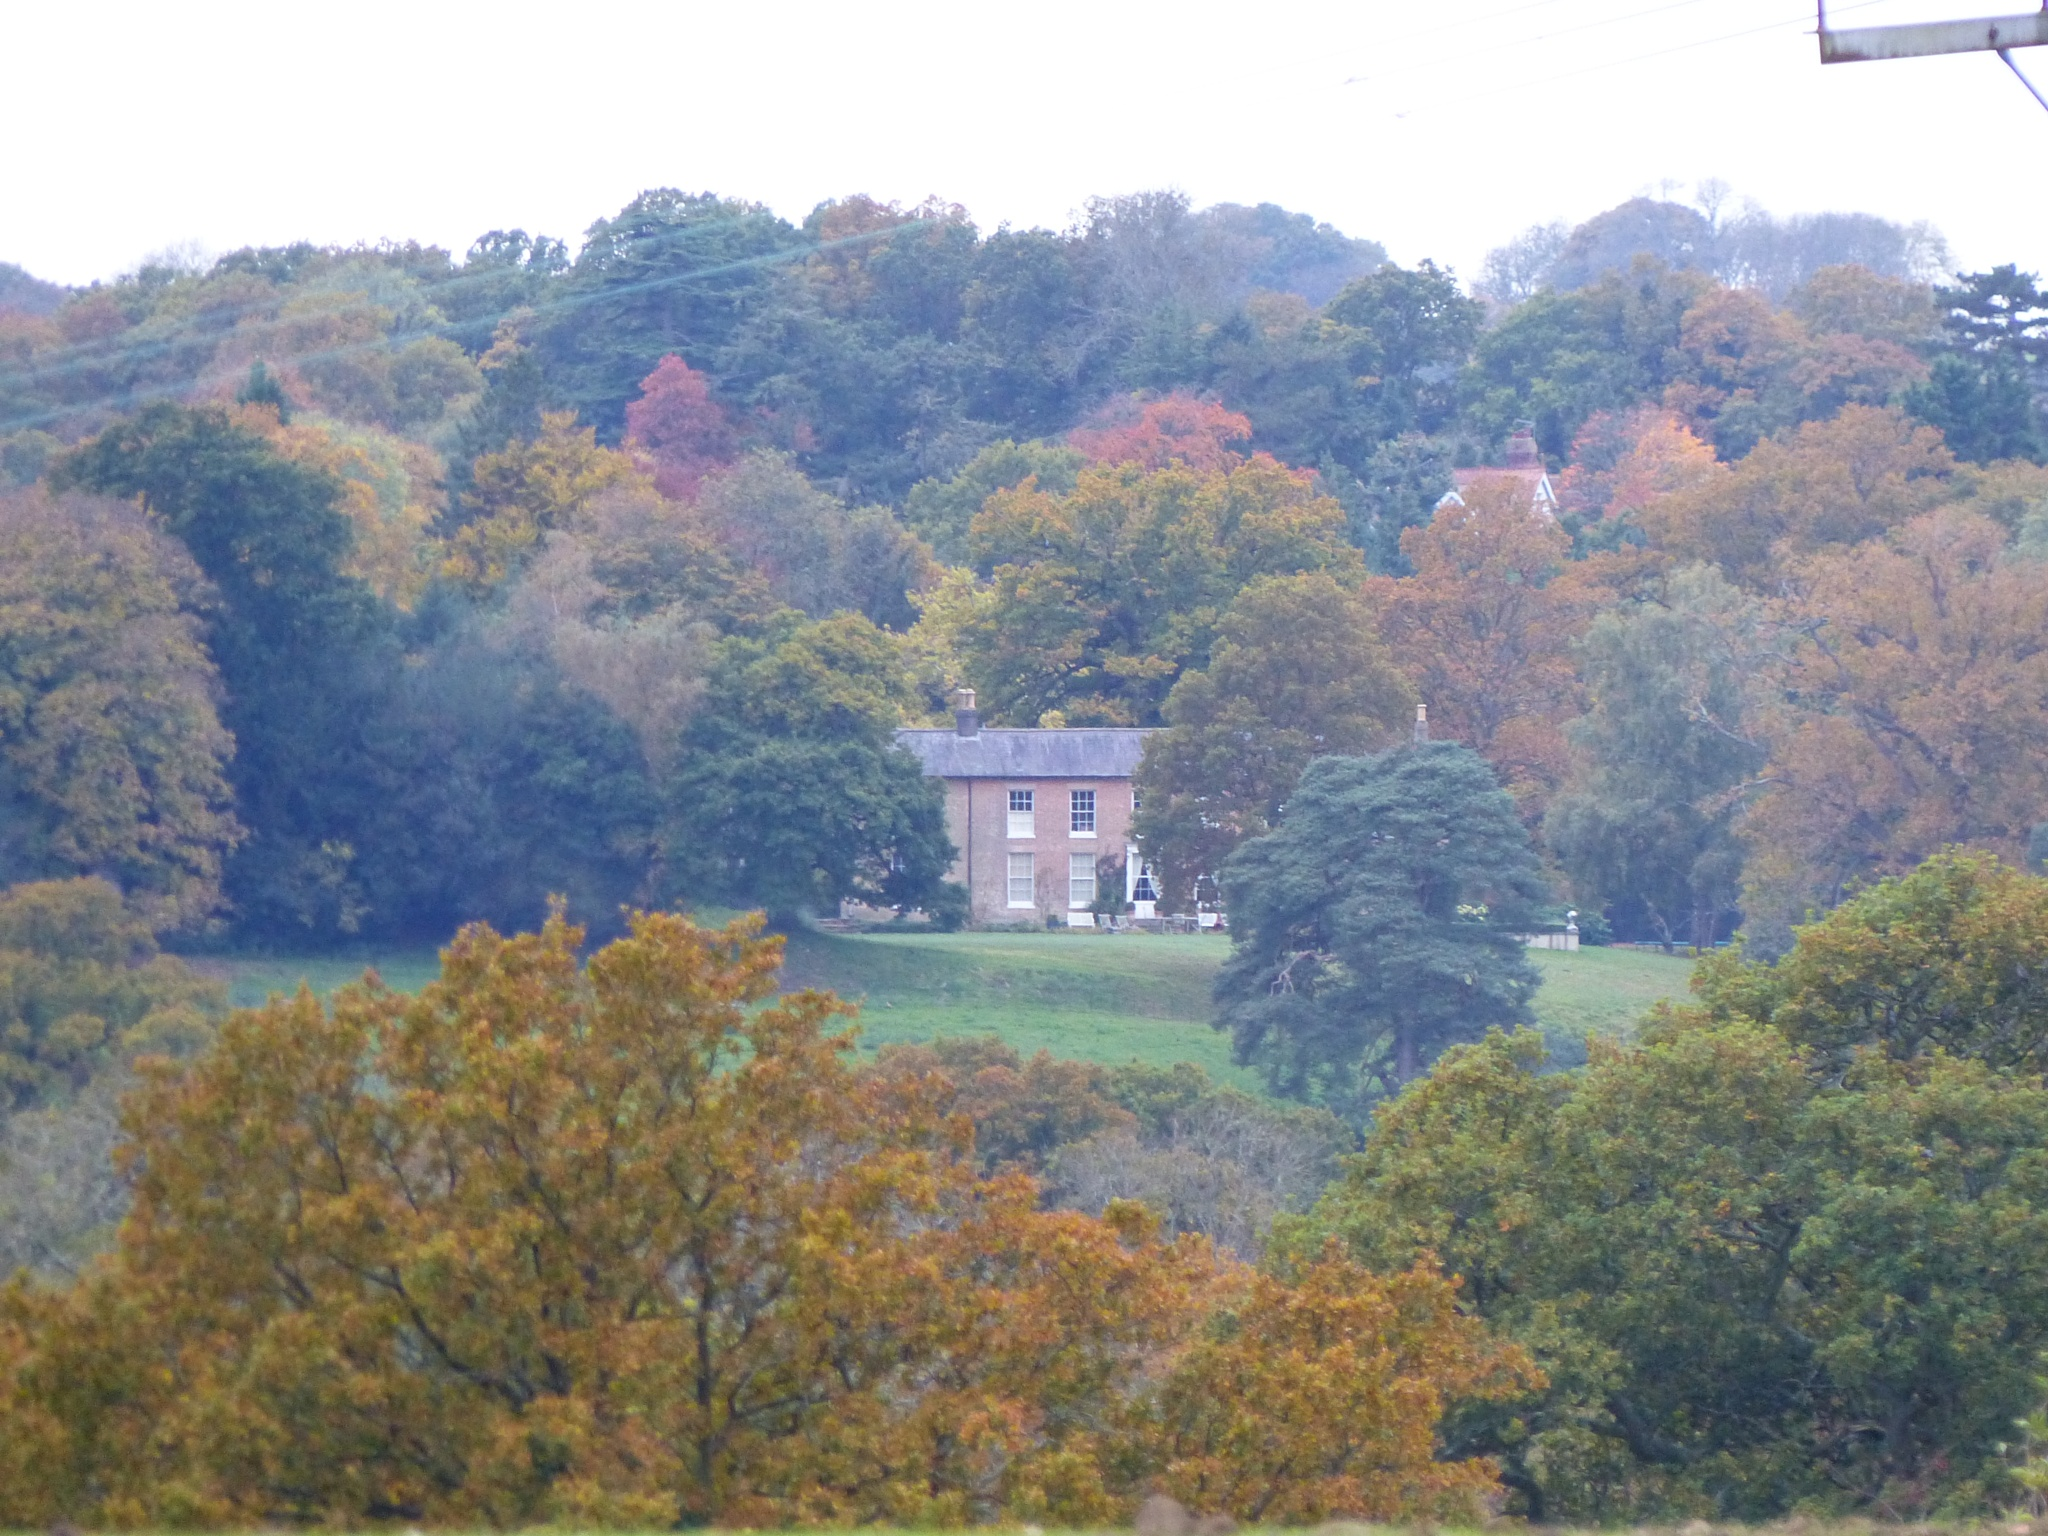 #Autumn Colours #Balcombe #WestSussex by Malc Thomason